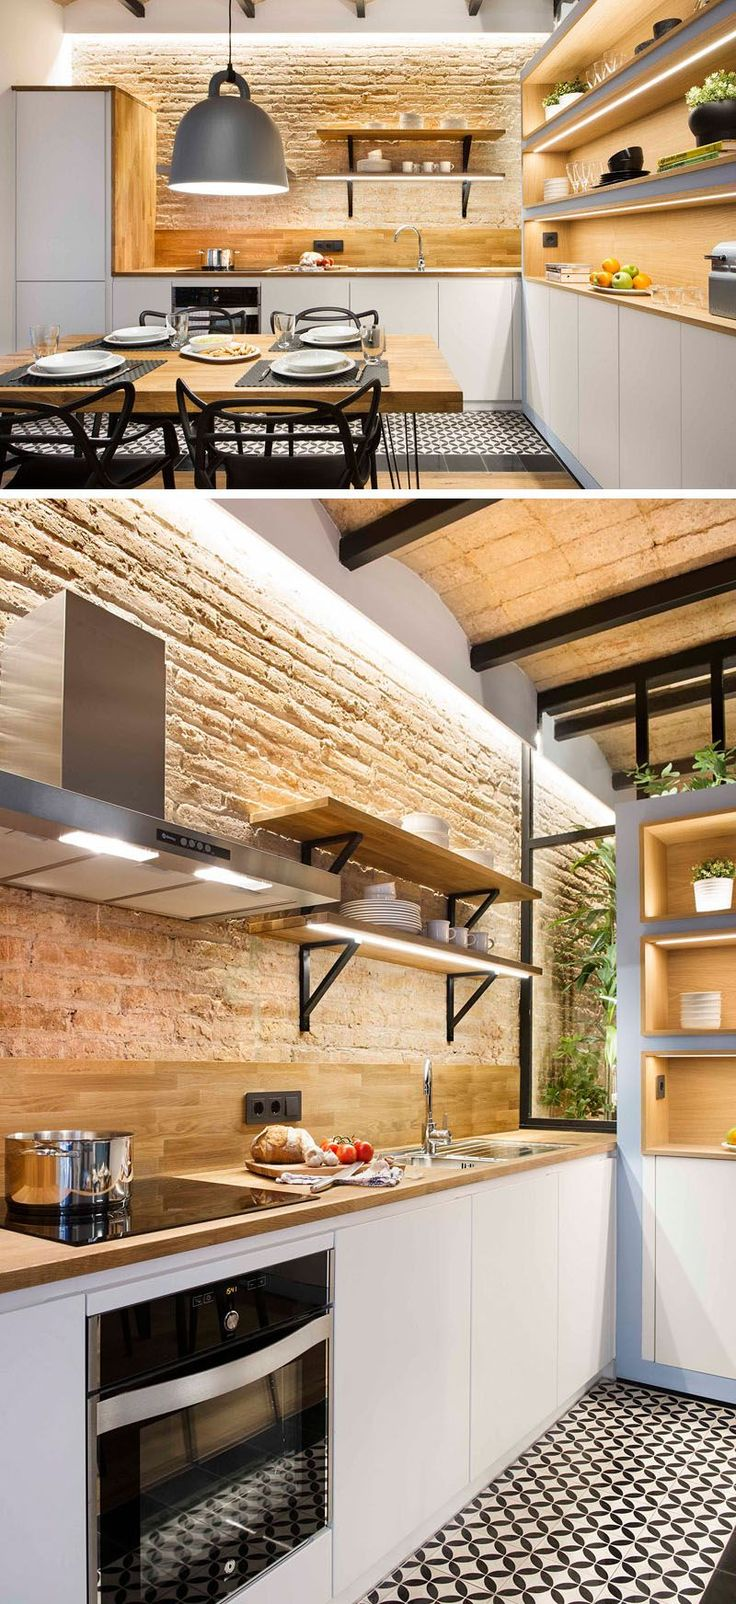 In this small modern kitchen, wood countertops and backsplash compliment  the warm brick while white